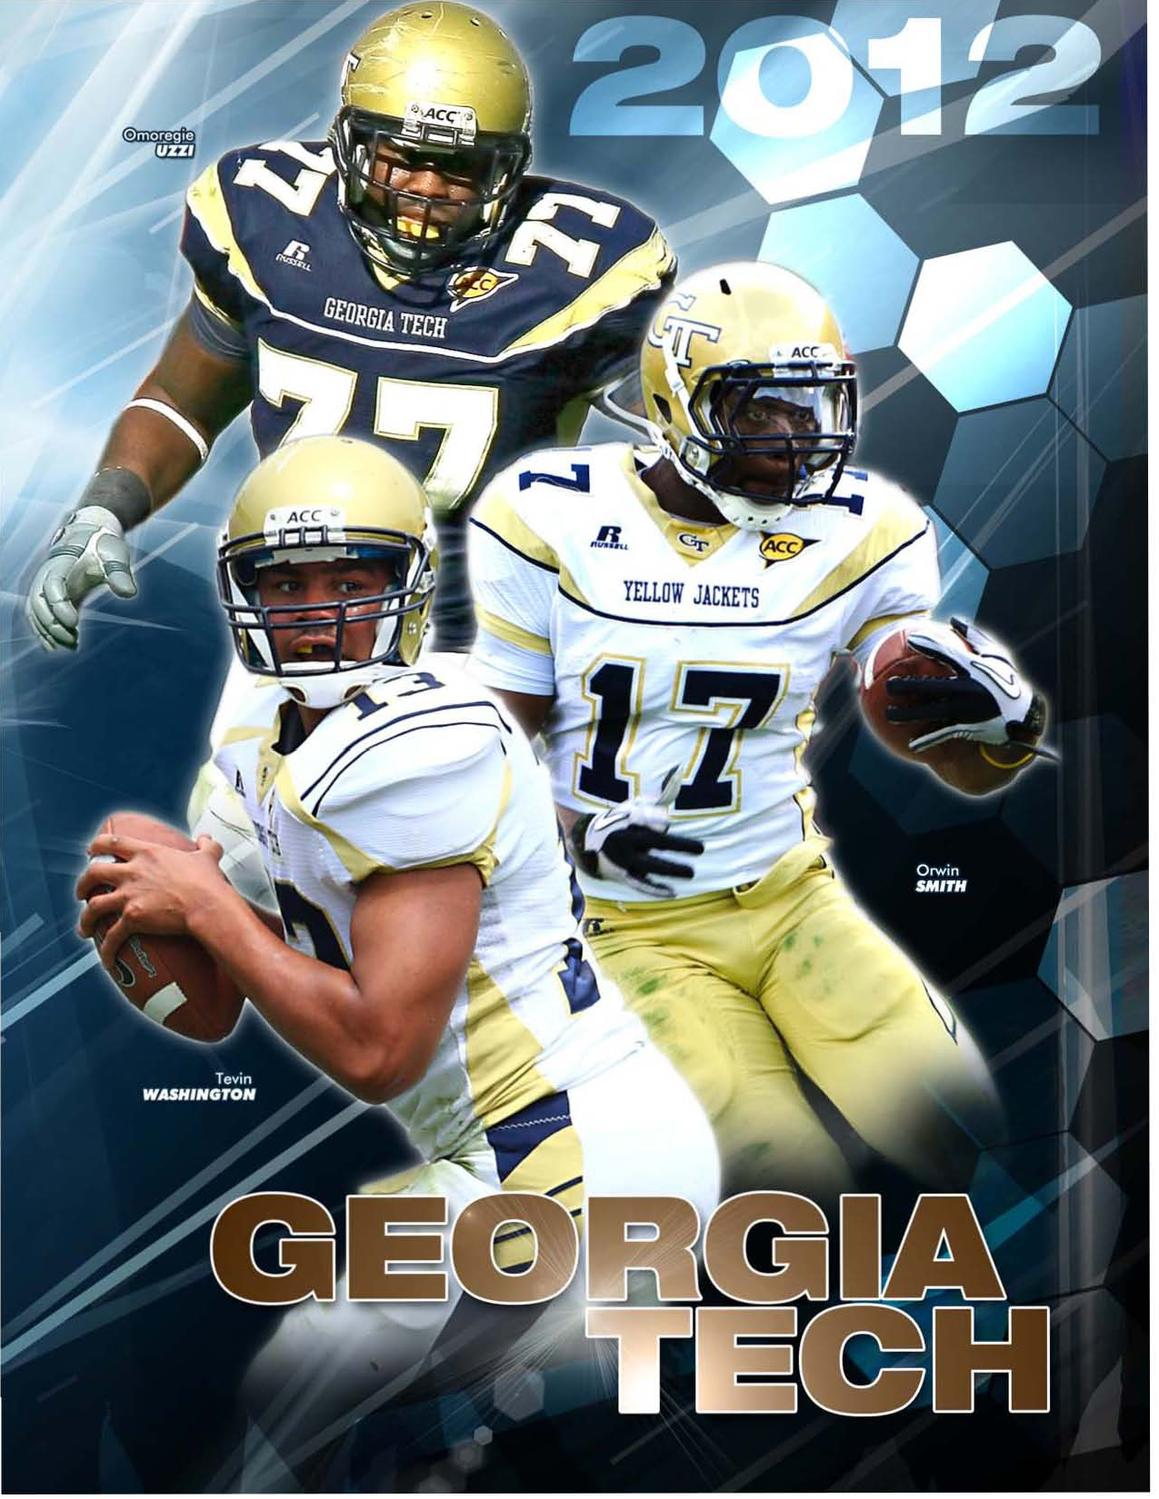 2012 Georgia Tech Football Info Guide by GTAthletics - issuu